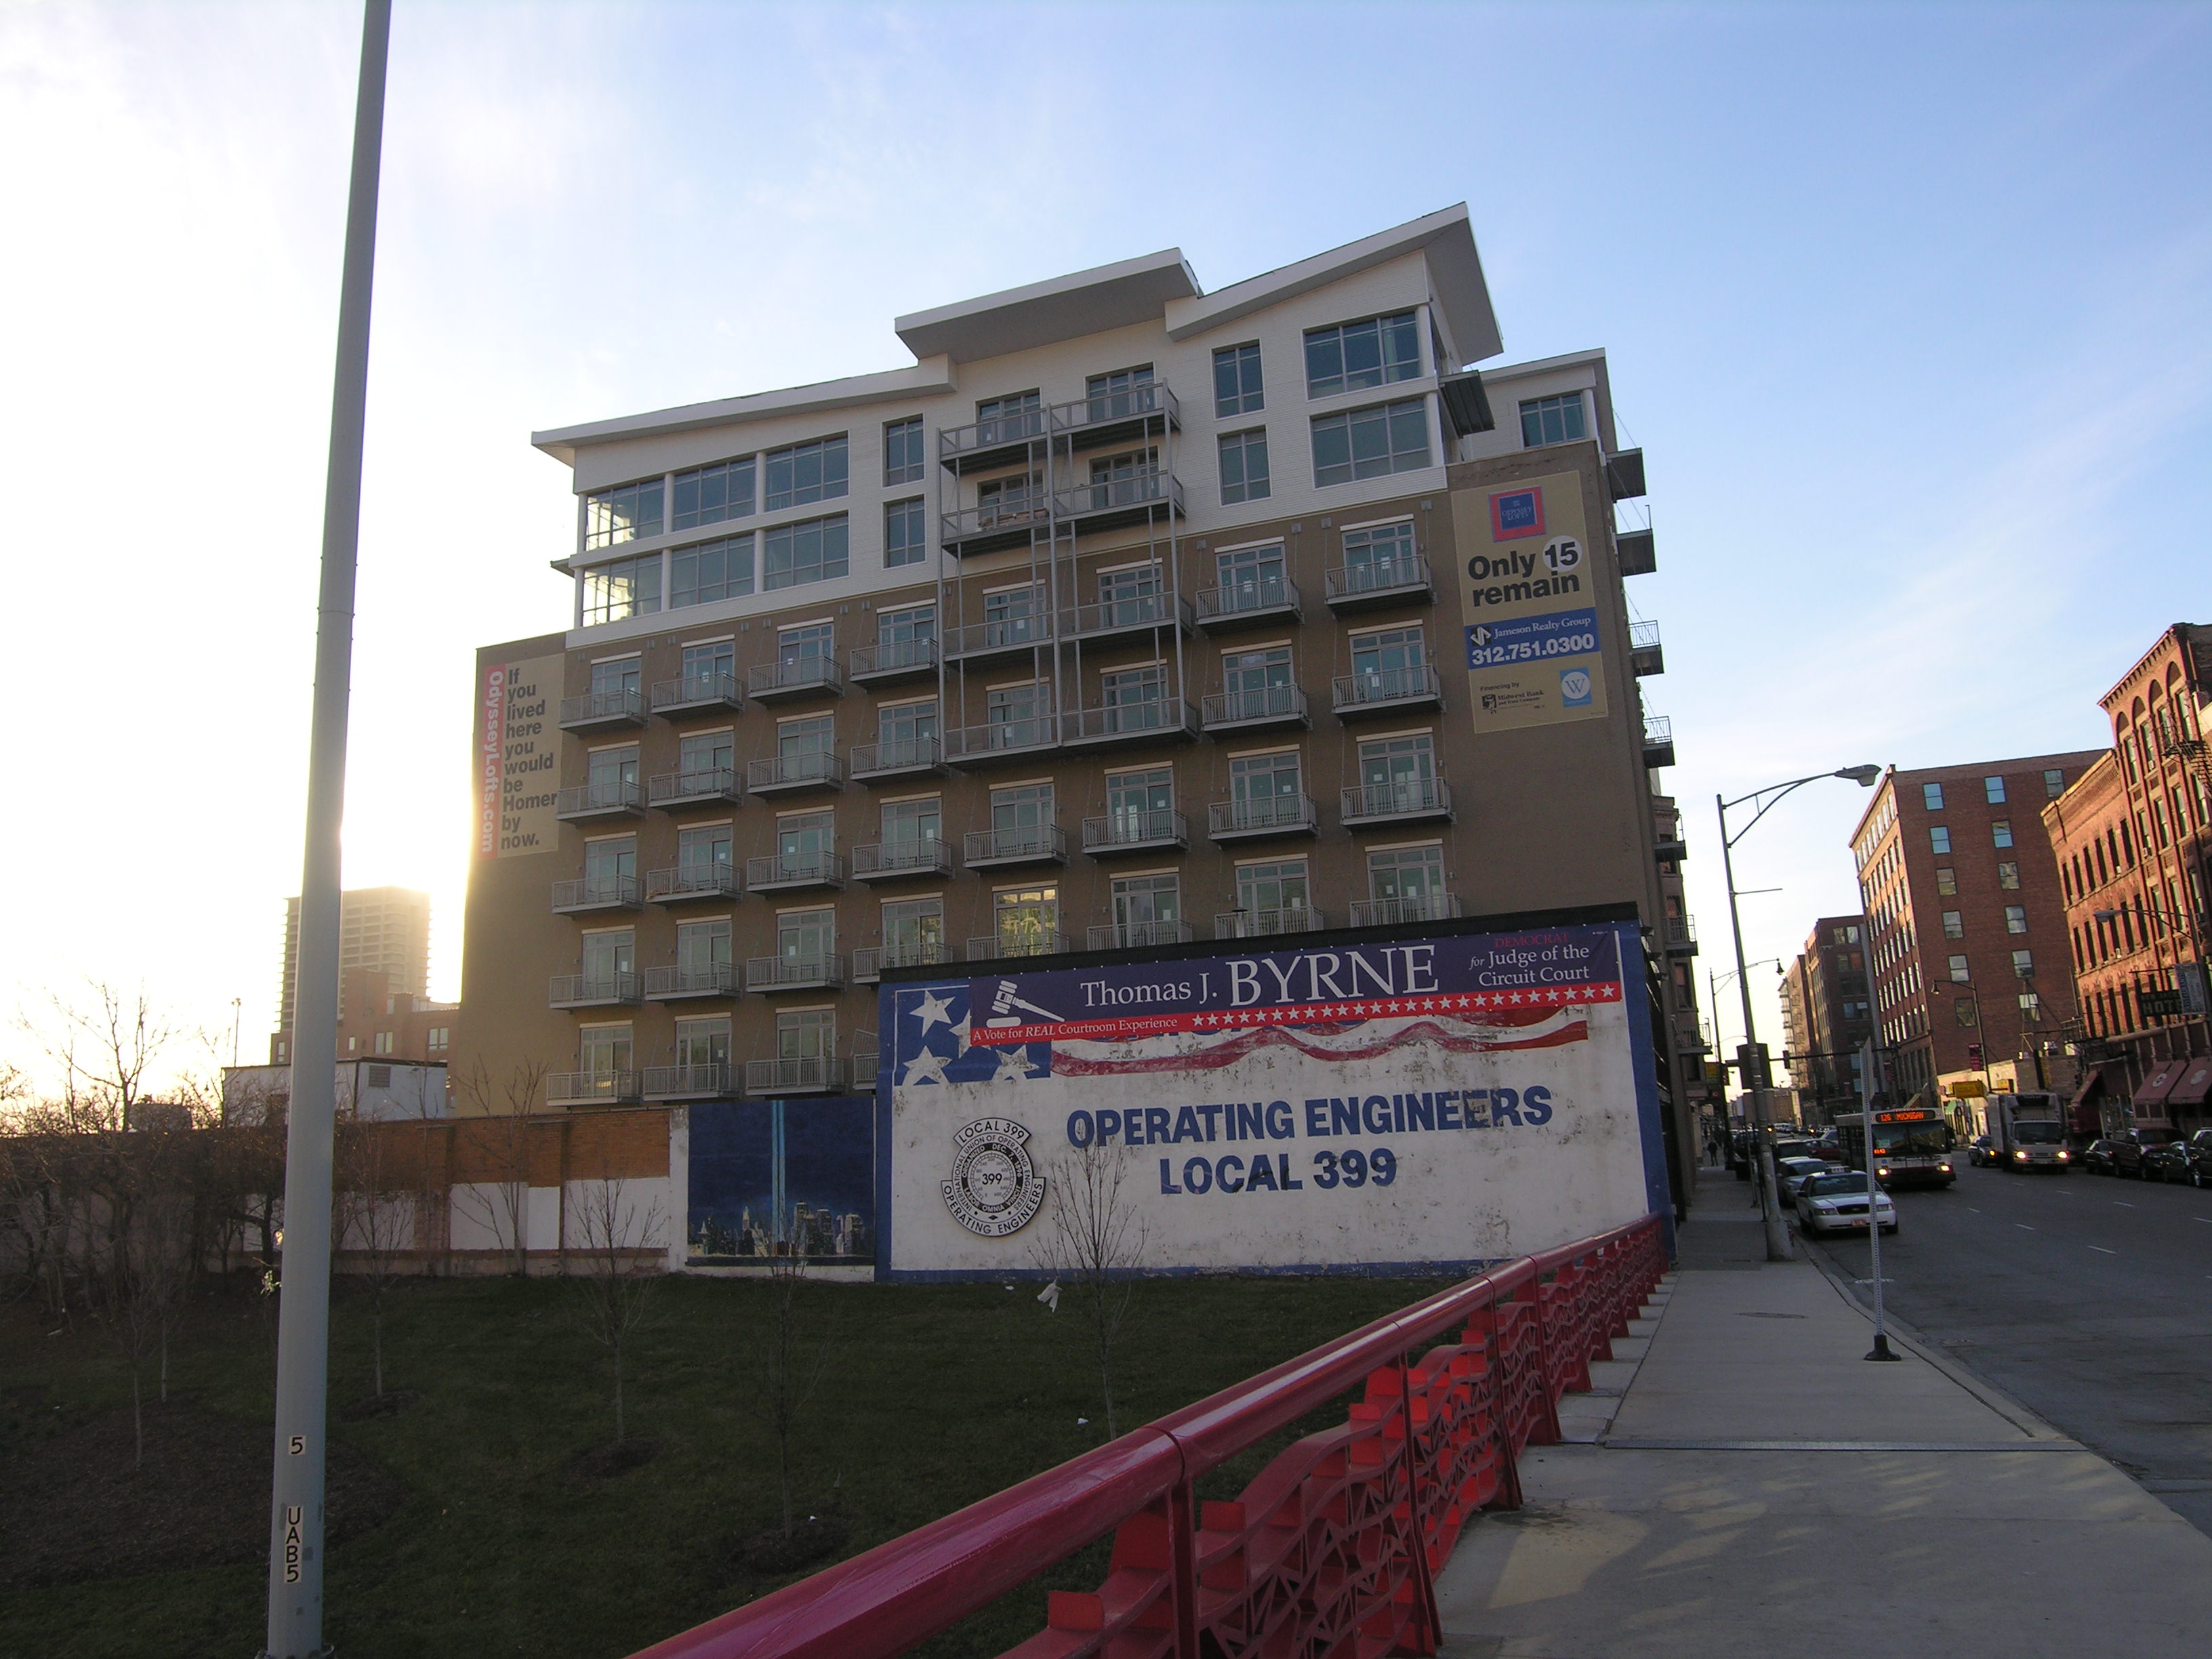 Work in progress: first occupancy near at Odyssey Lofts